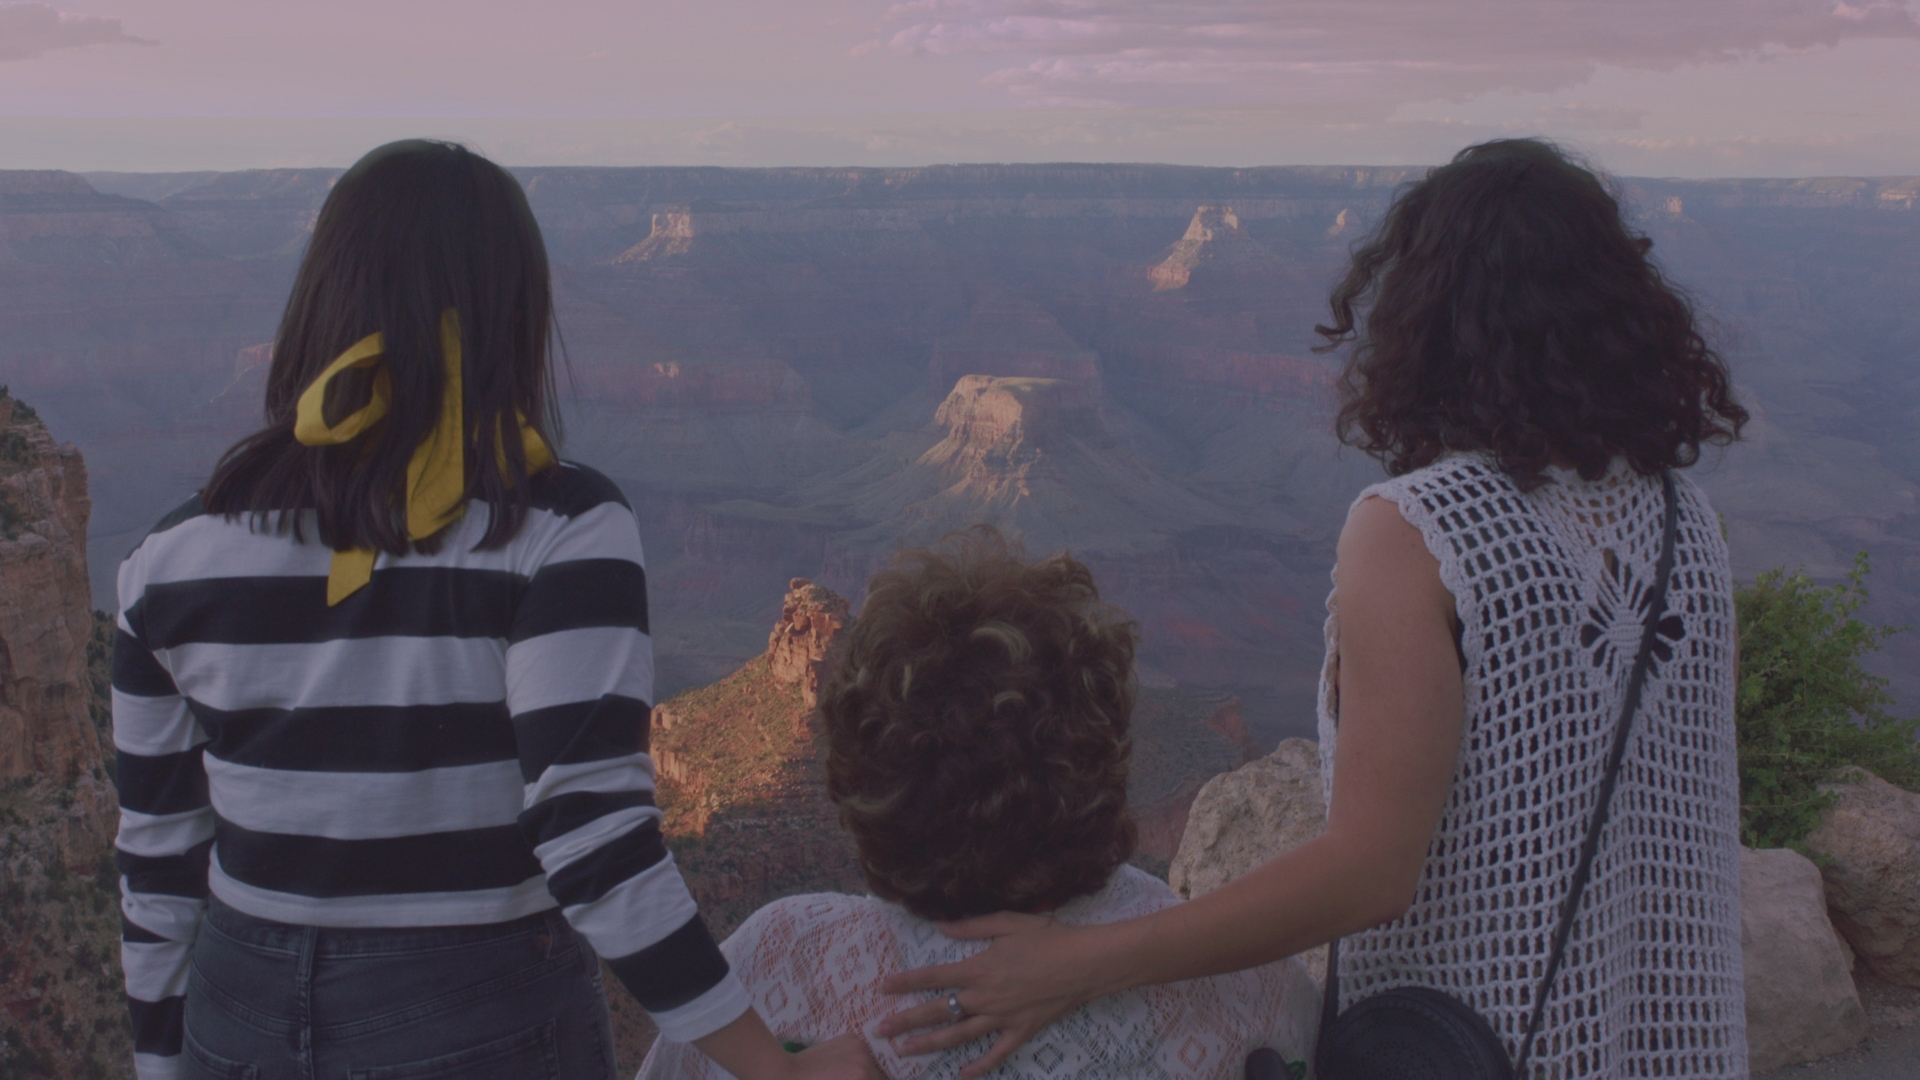 Marina, Juana, and Karina look out at the Grand Canyon.